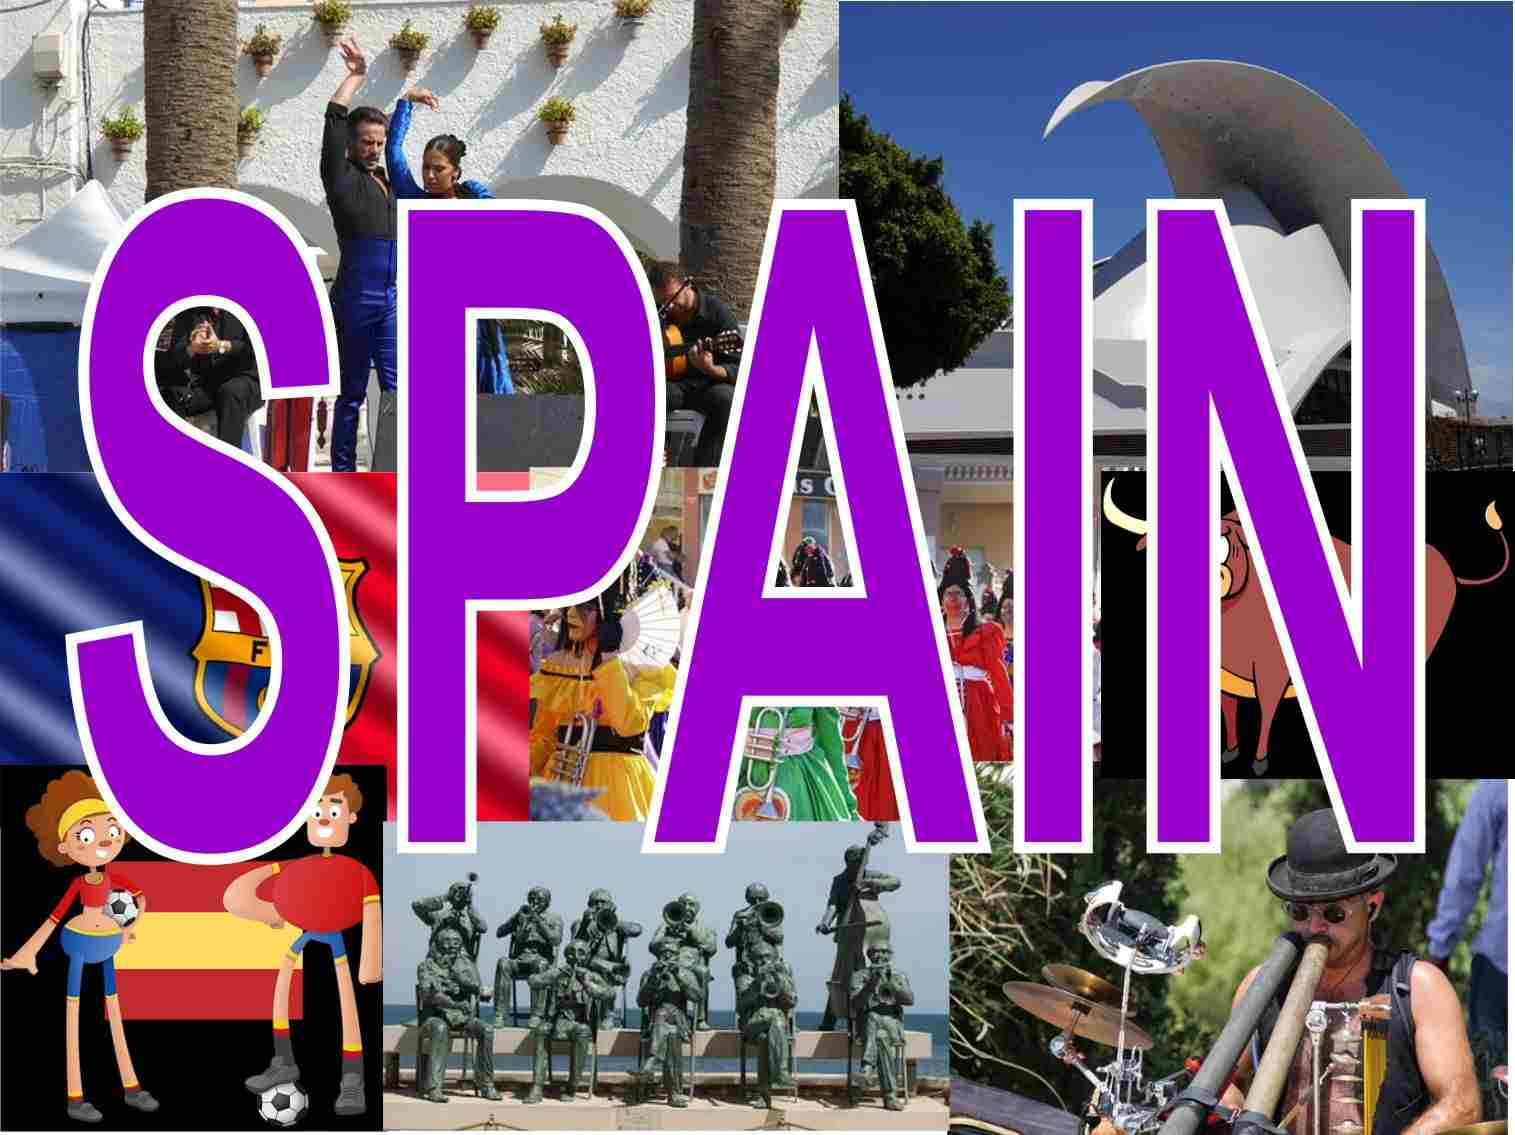 Spain: what to see in different cities, what are they